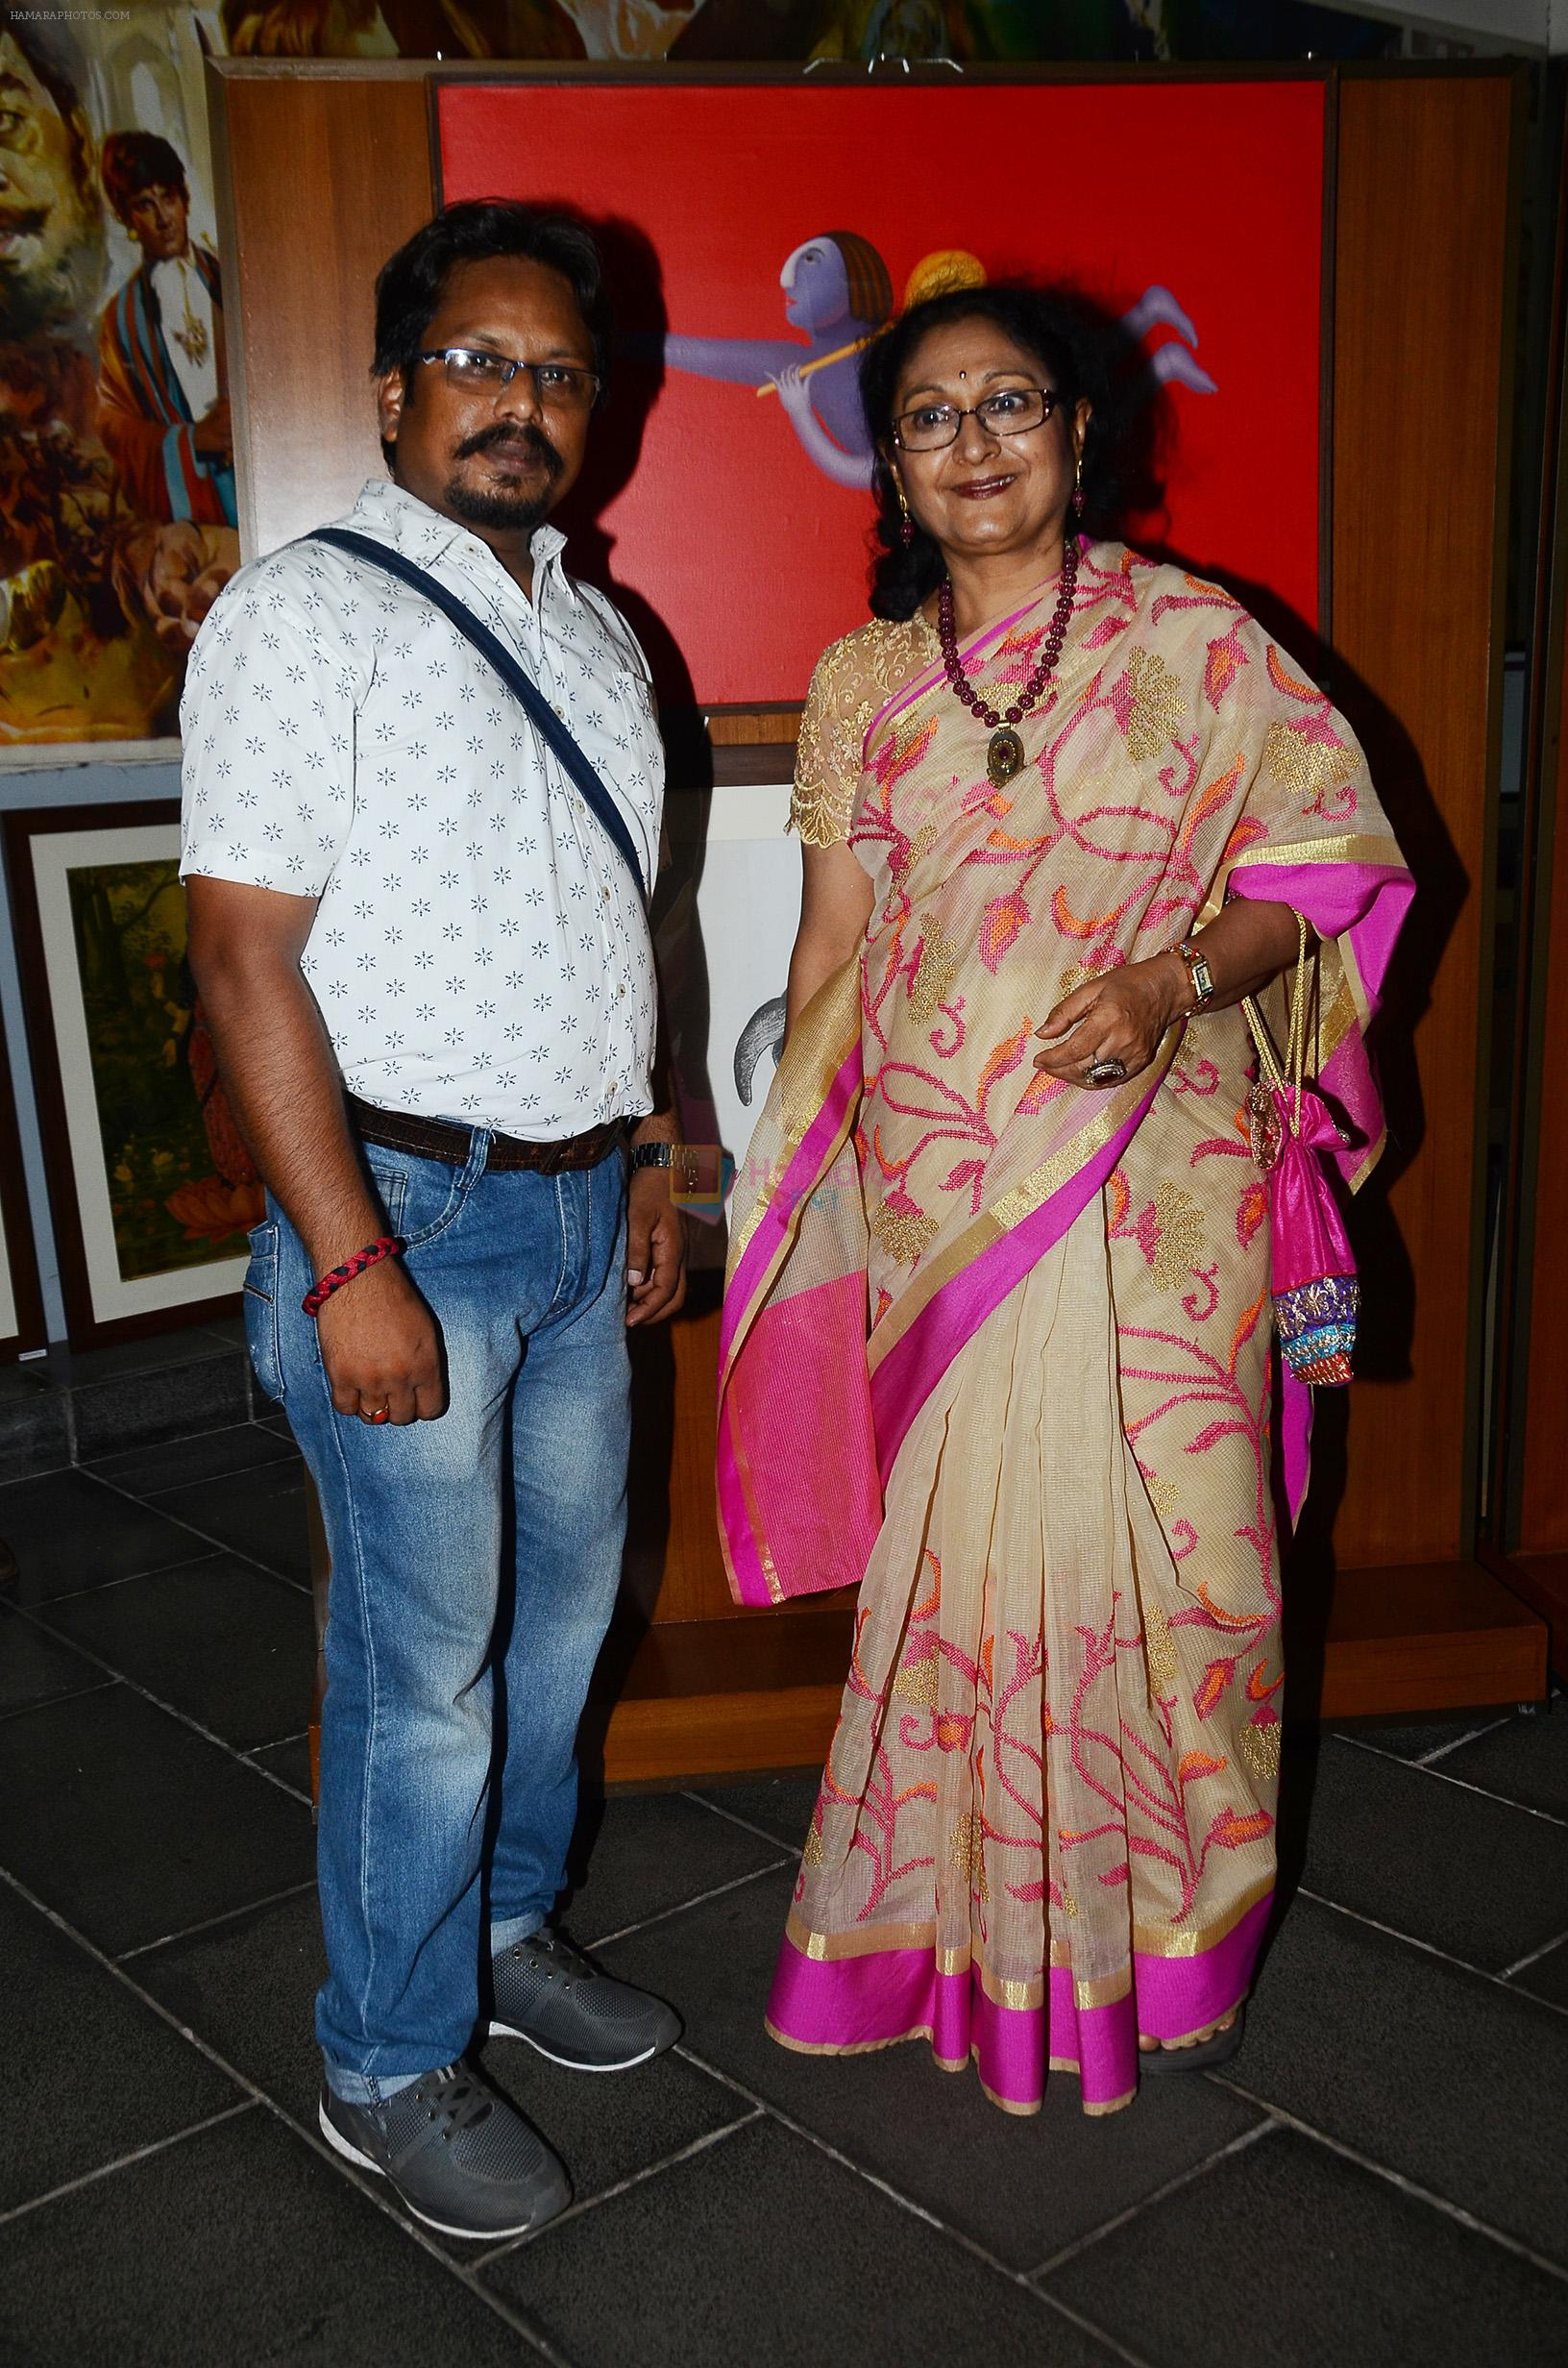 Artists Paramesh Paul and Nayana Kanodia at the opening preview of Osian's The Greatest Indian Show on Earth 2 - Vintage Film Memorabilia, Publicity Materials & Arts Auction